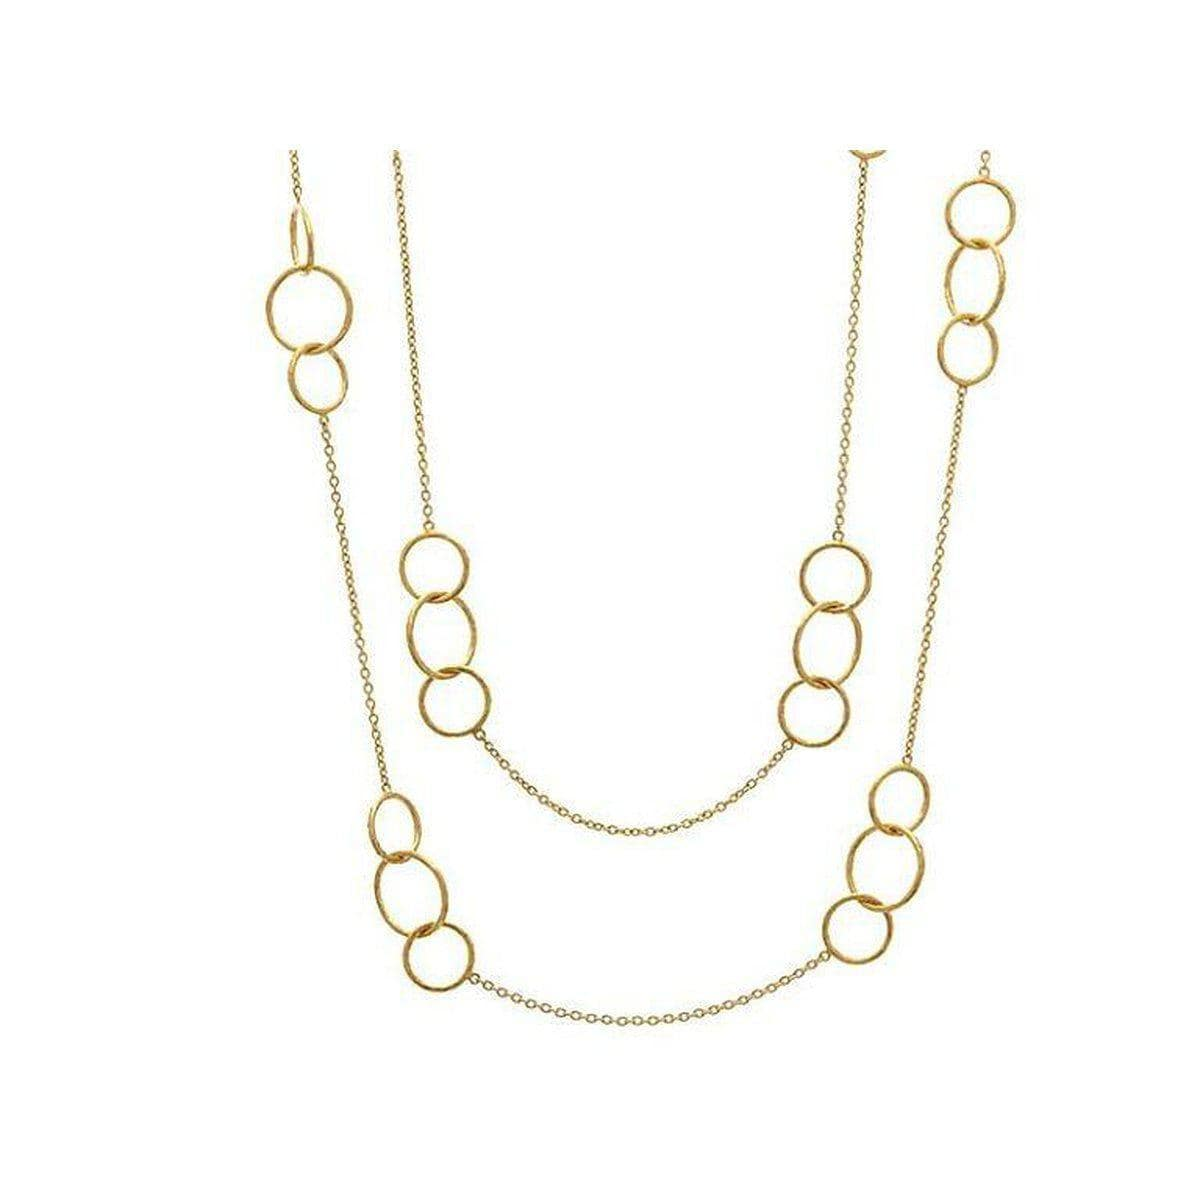 Delicate 22K Gold Necklace - CHN-GPL-8MXRD-LST-36-GURHAN-Renee Taylor Gallery